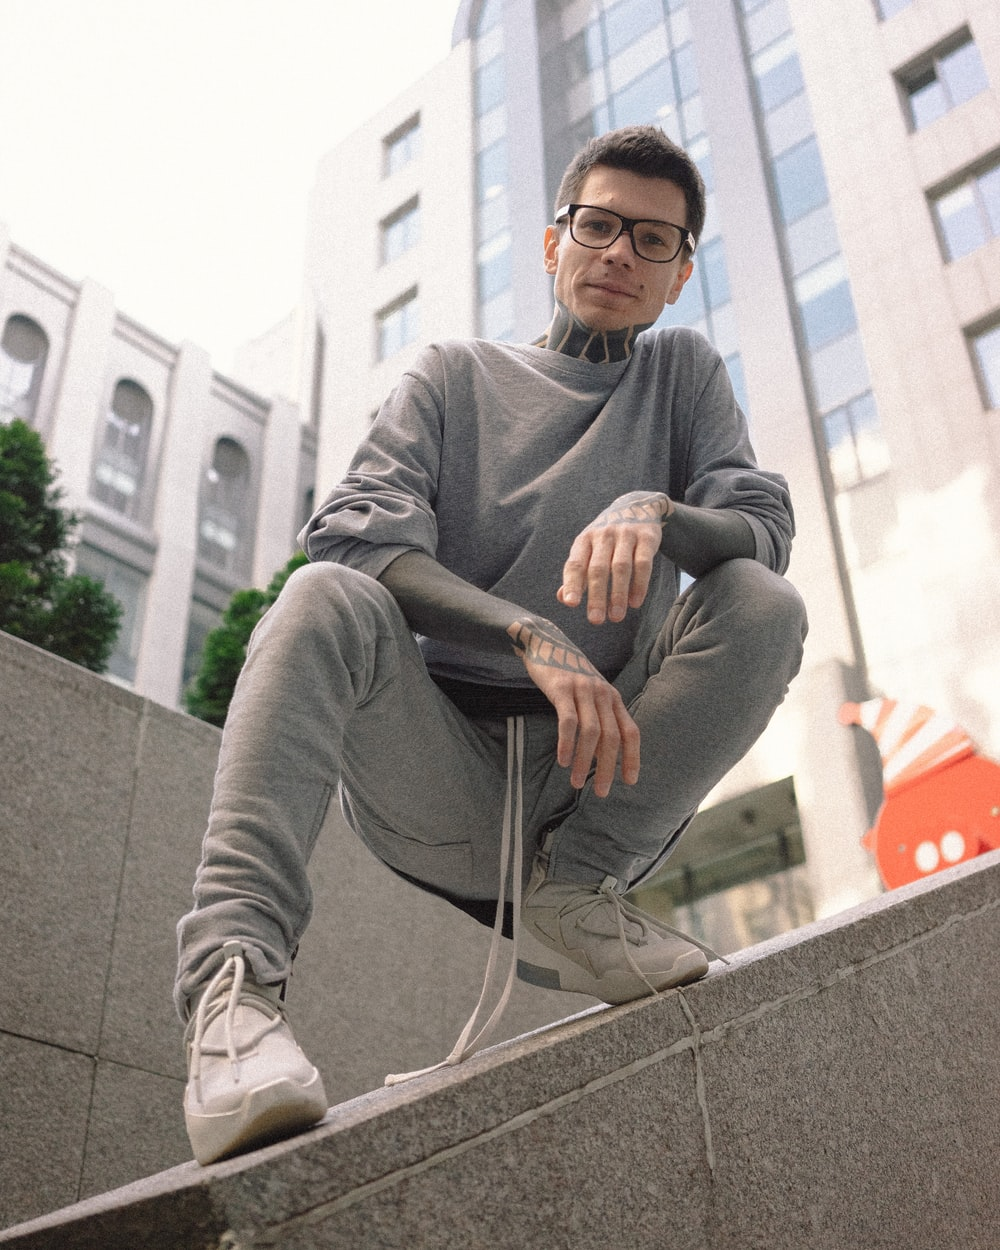 man in gray sweater sitting on gray concrete bench